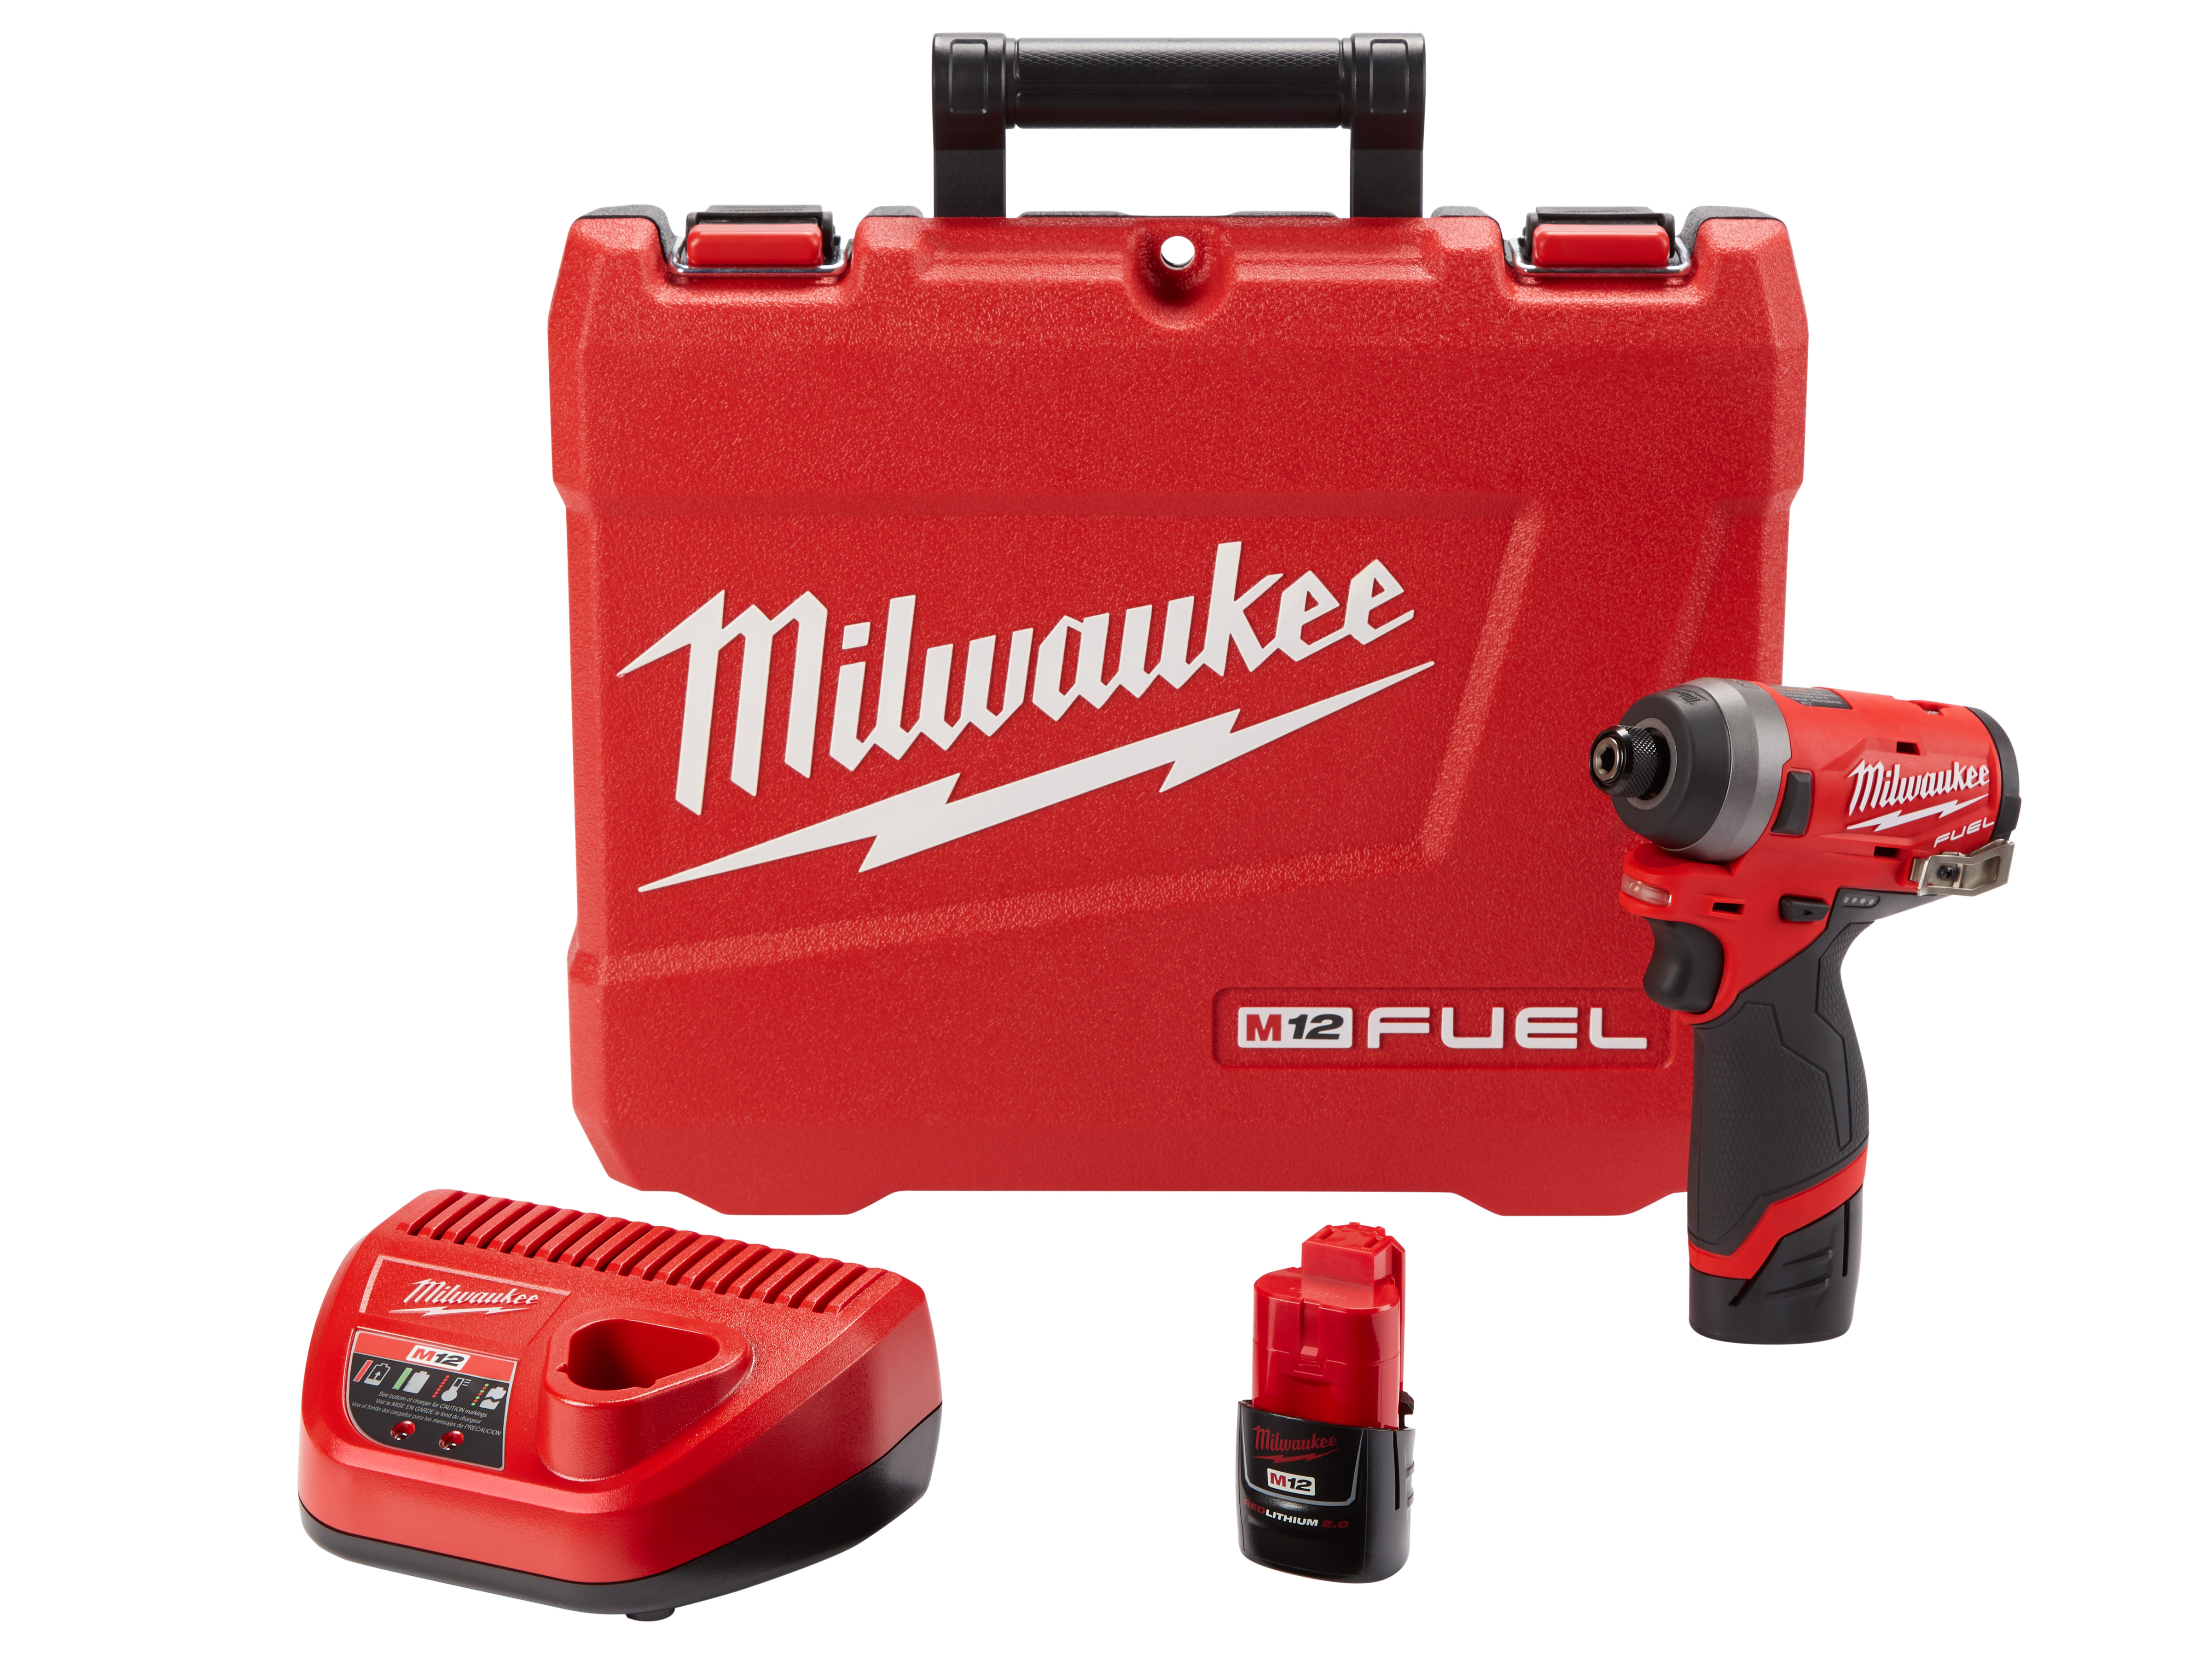 Milwaukee® M12™ FUEL™ 2553-22 Cordless Impact Driver Kit, 1/4 in Hex Drive, 4000 bpm, 1300 in-lb Torque, 12 VAC, 5.1 in OAL